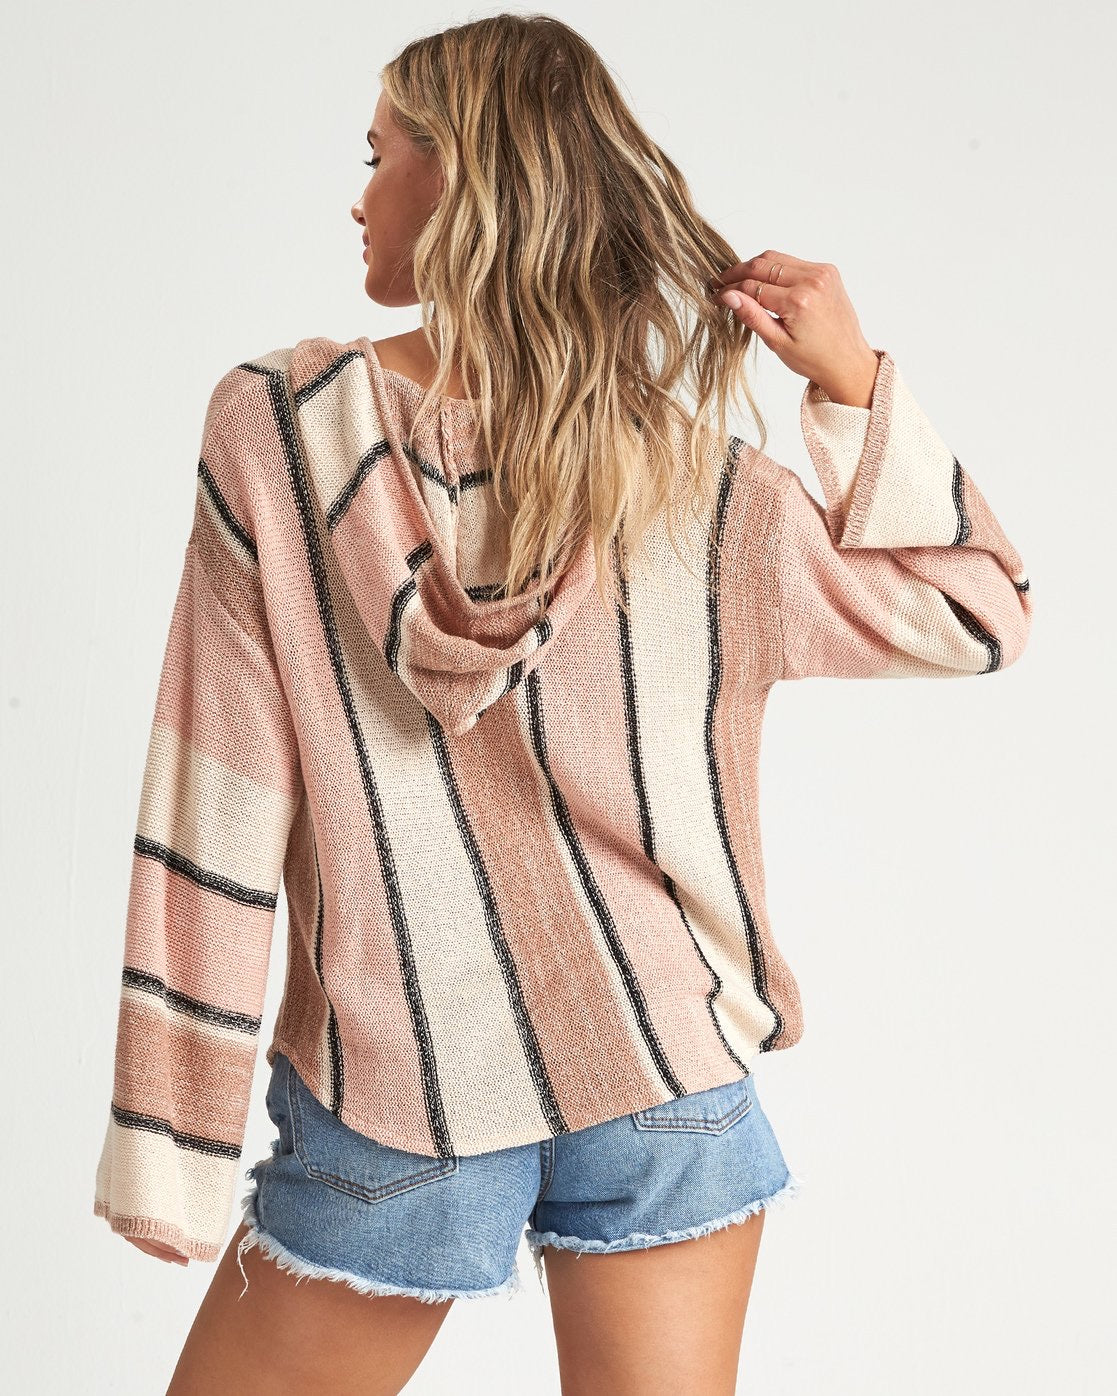 Baja Beach Sweater